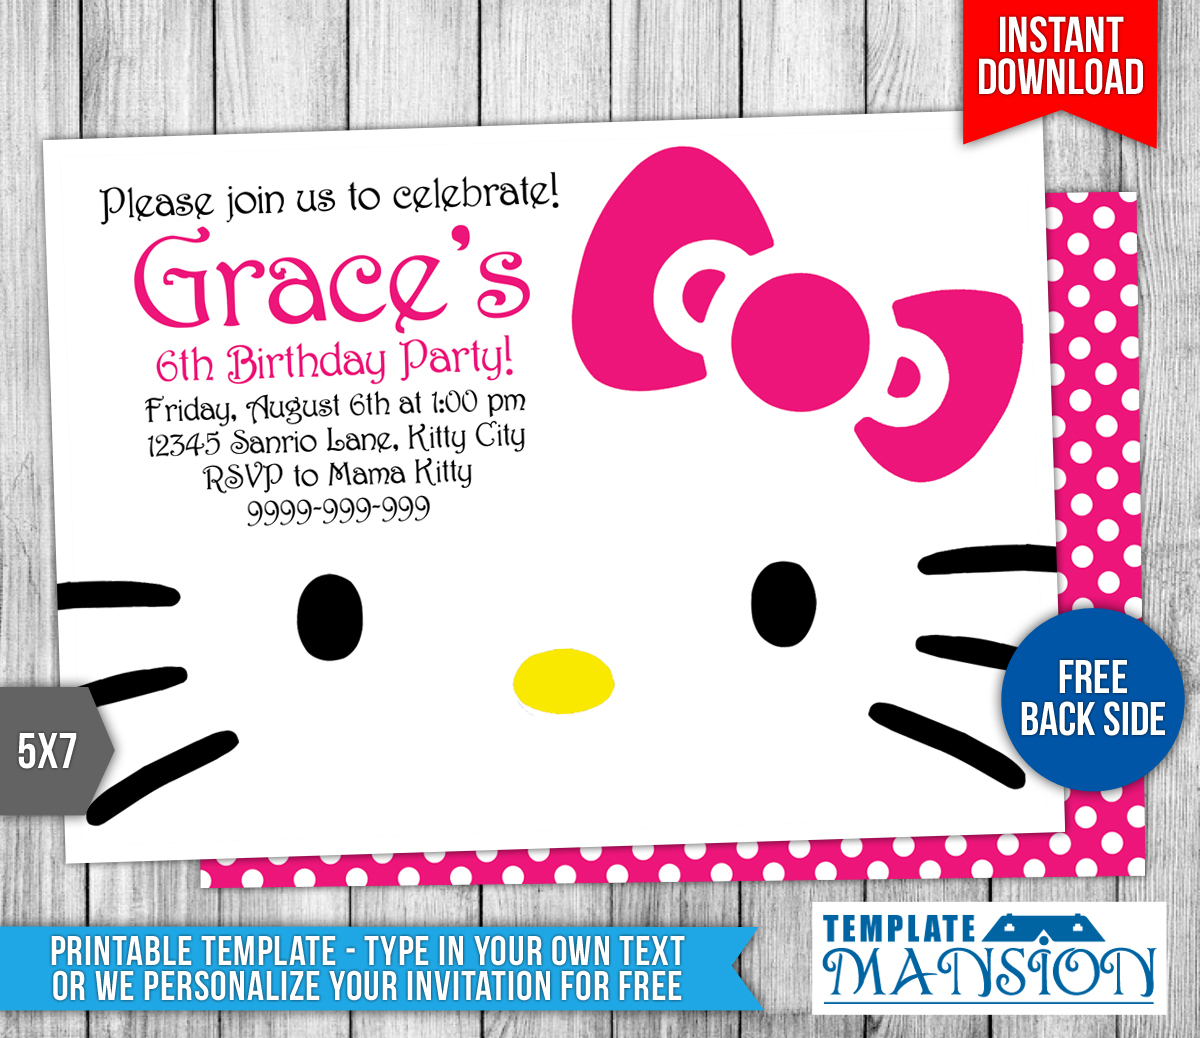 hello kitty birthday invitation by templatemansion on hello kitty birthday invitation by templatemansion hello kitty birthday invitation by templatemansion